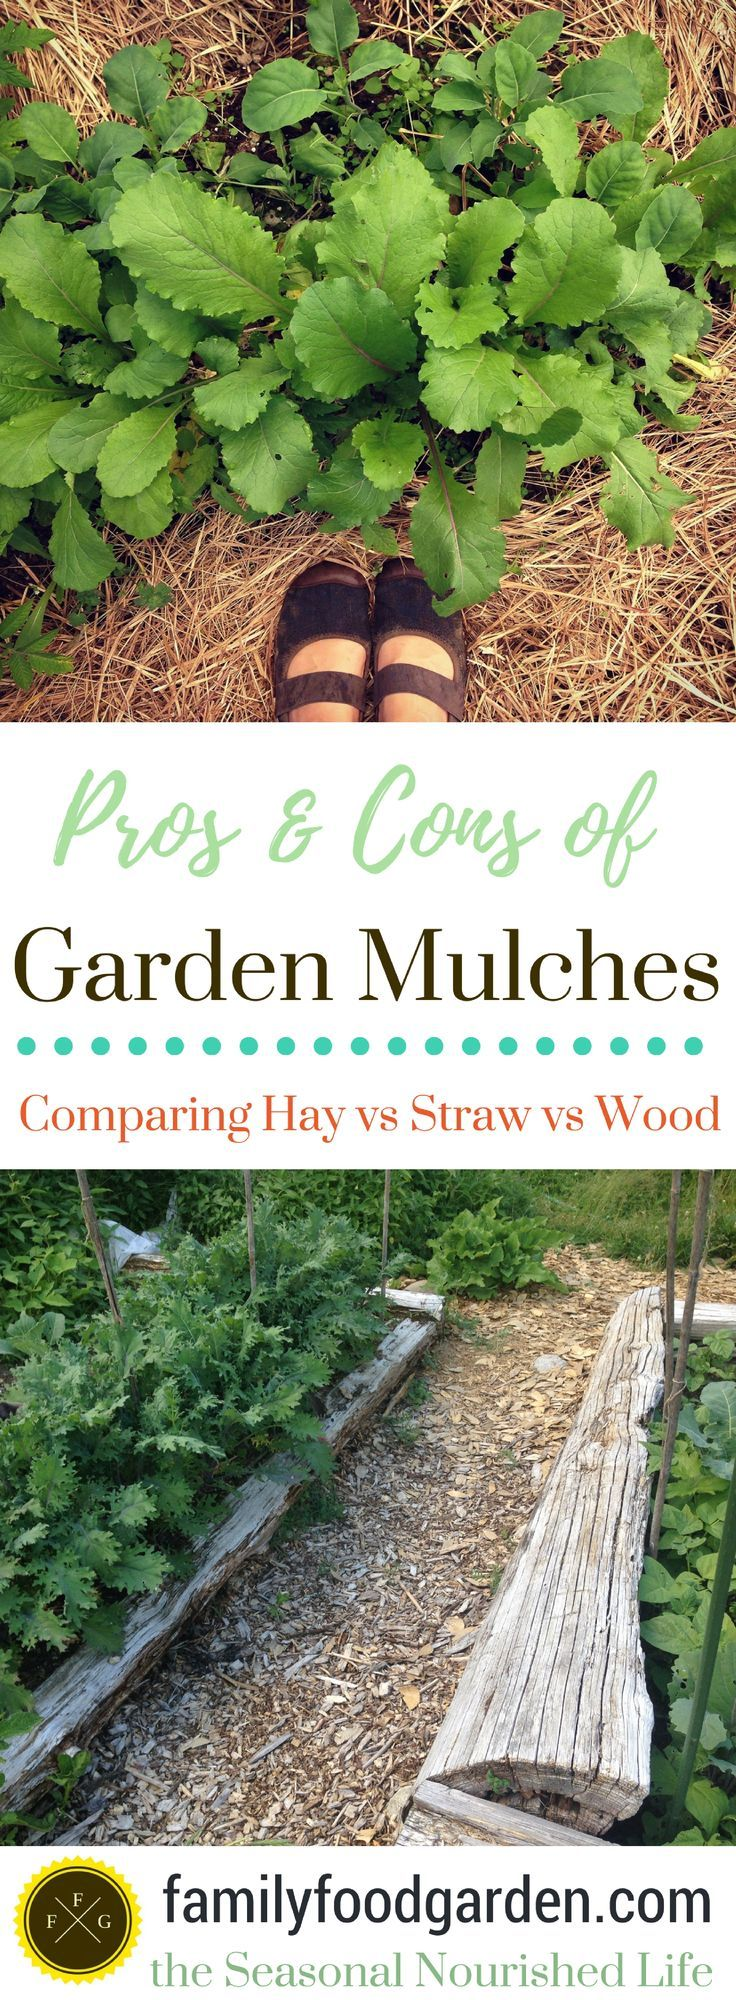 Garden mulches help you suppress weeds, build soil & reduce watering. Which garden mulches are better? Straw vs hay vs wood mulches for your garden beds